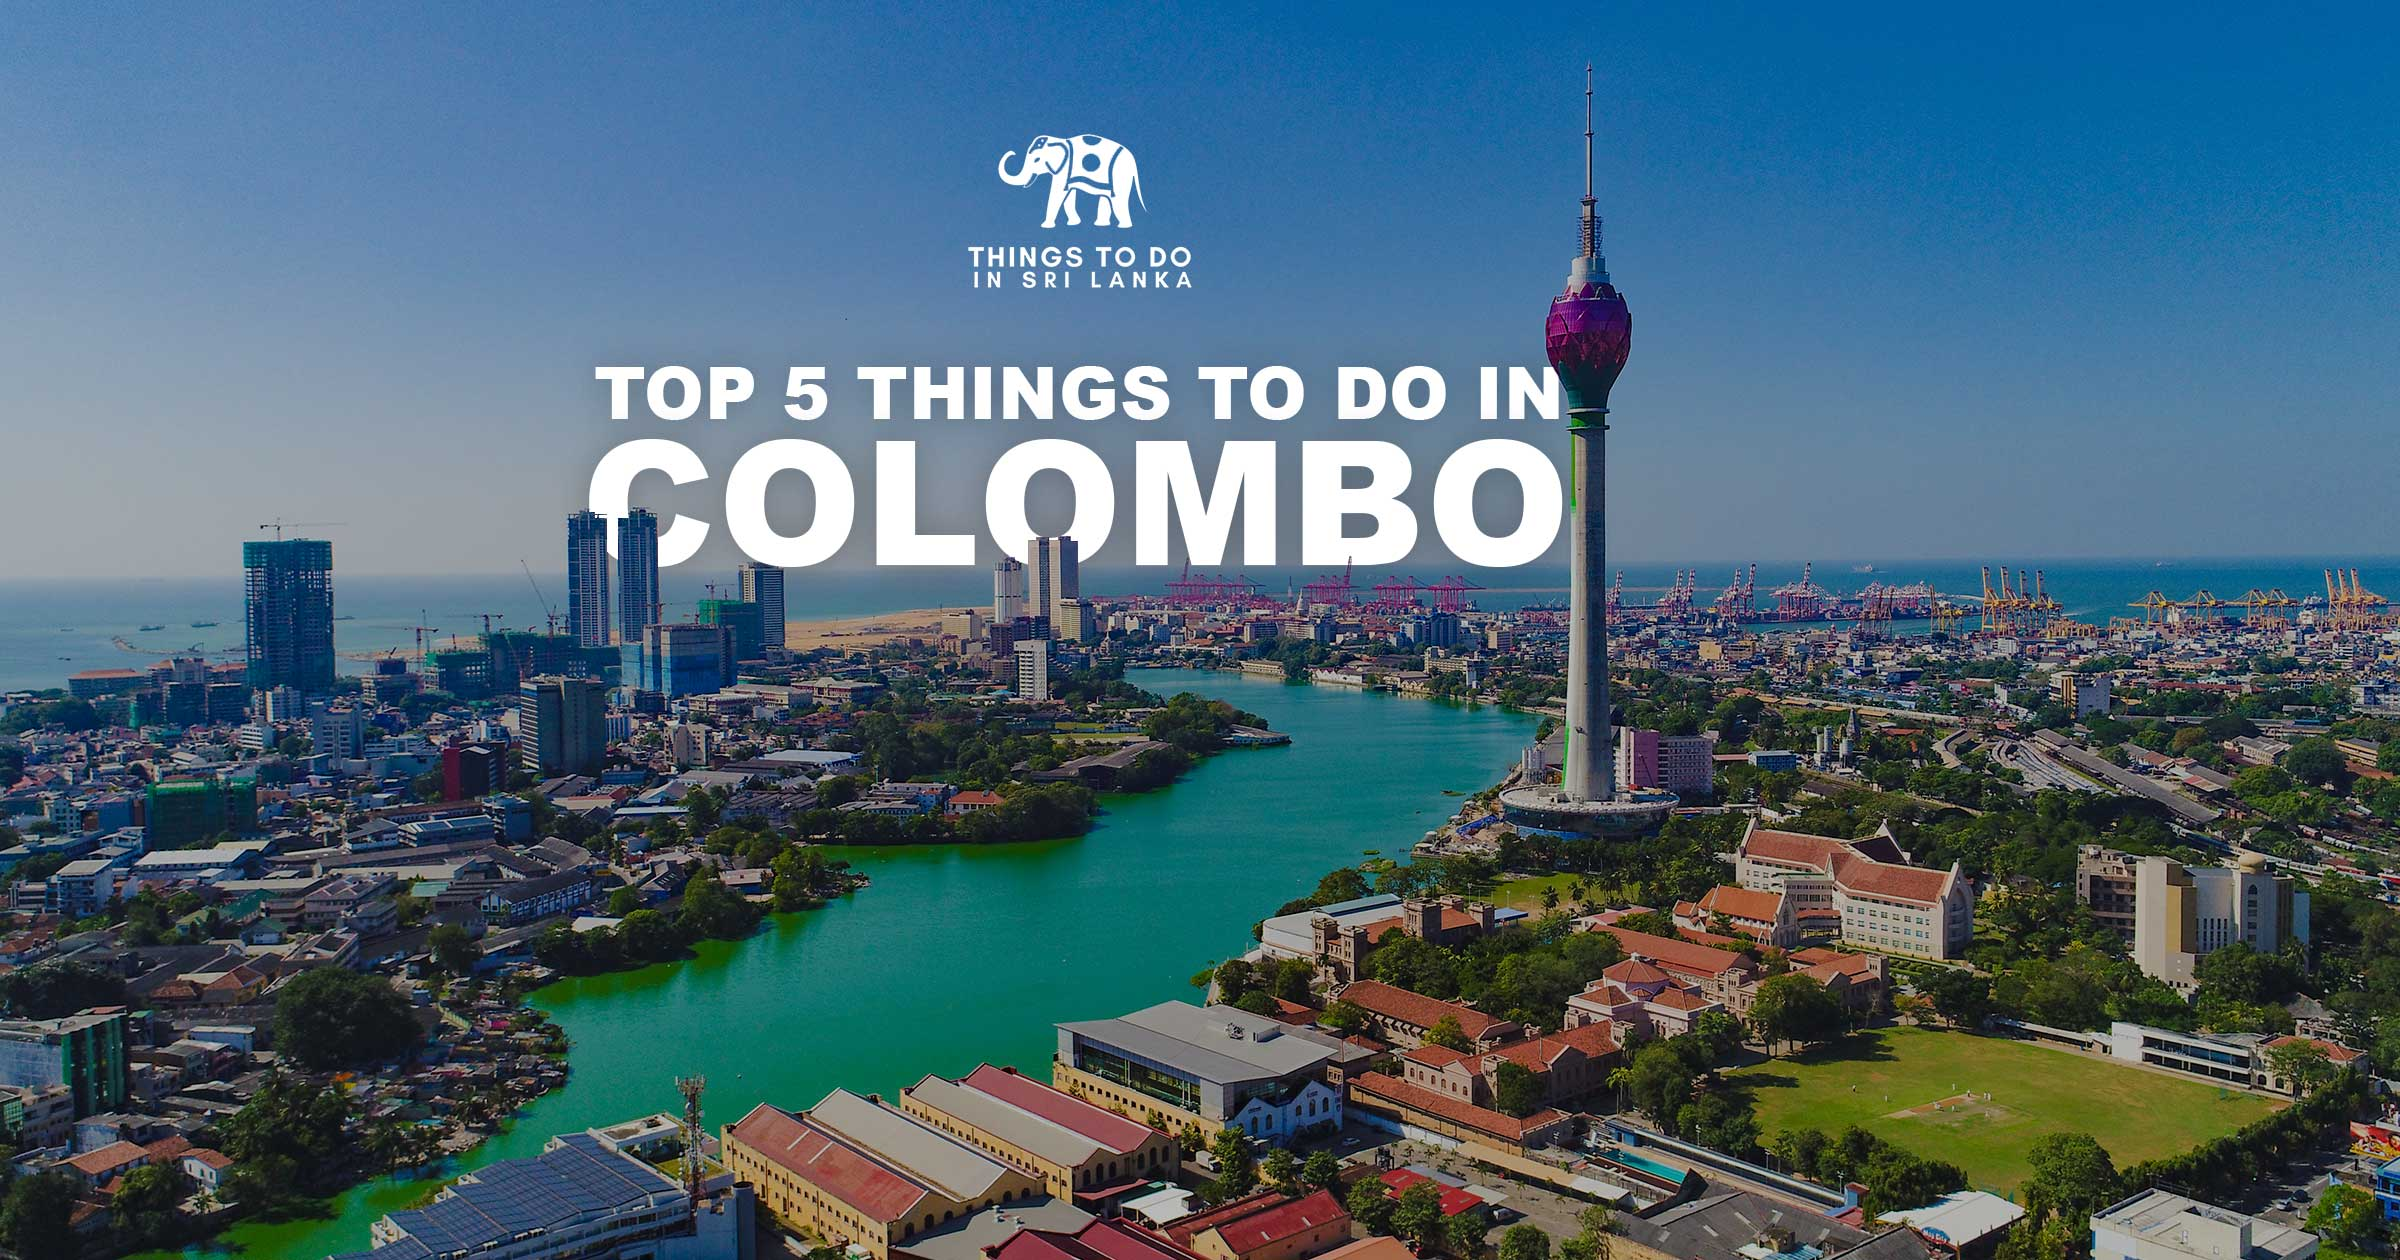 Top 5 things to do in Colombo